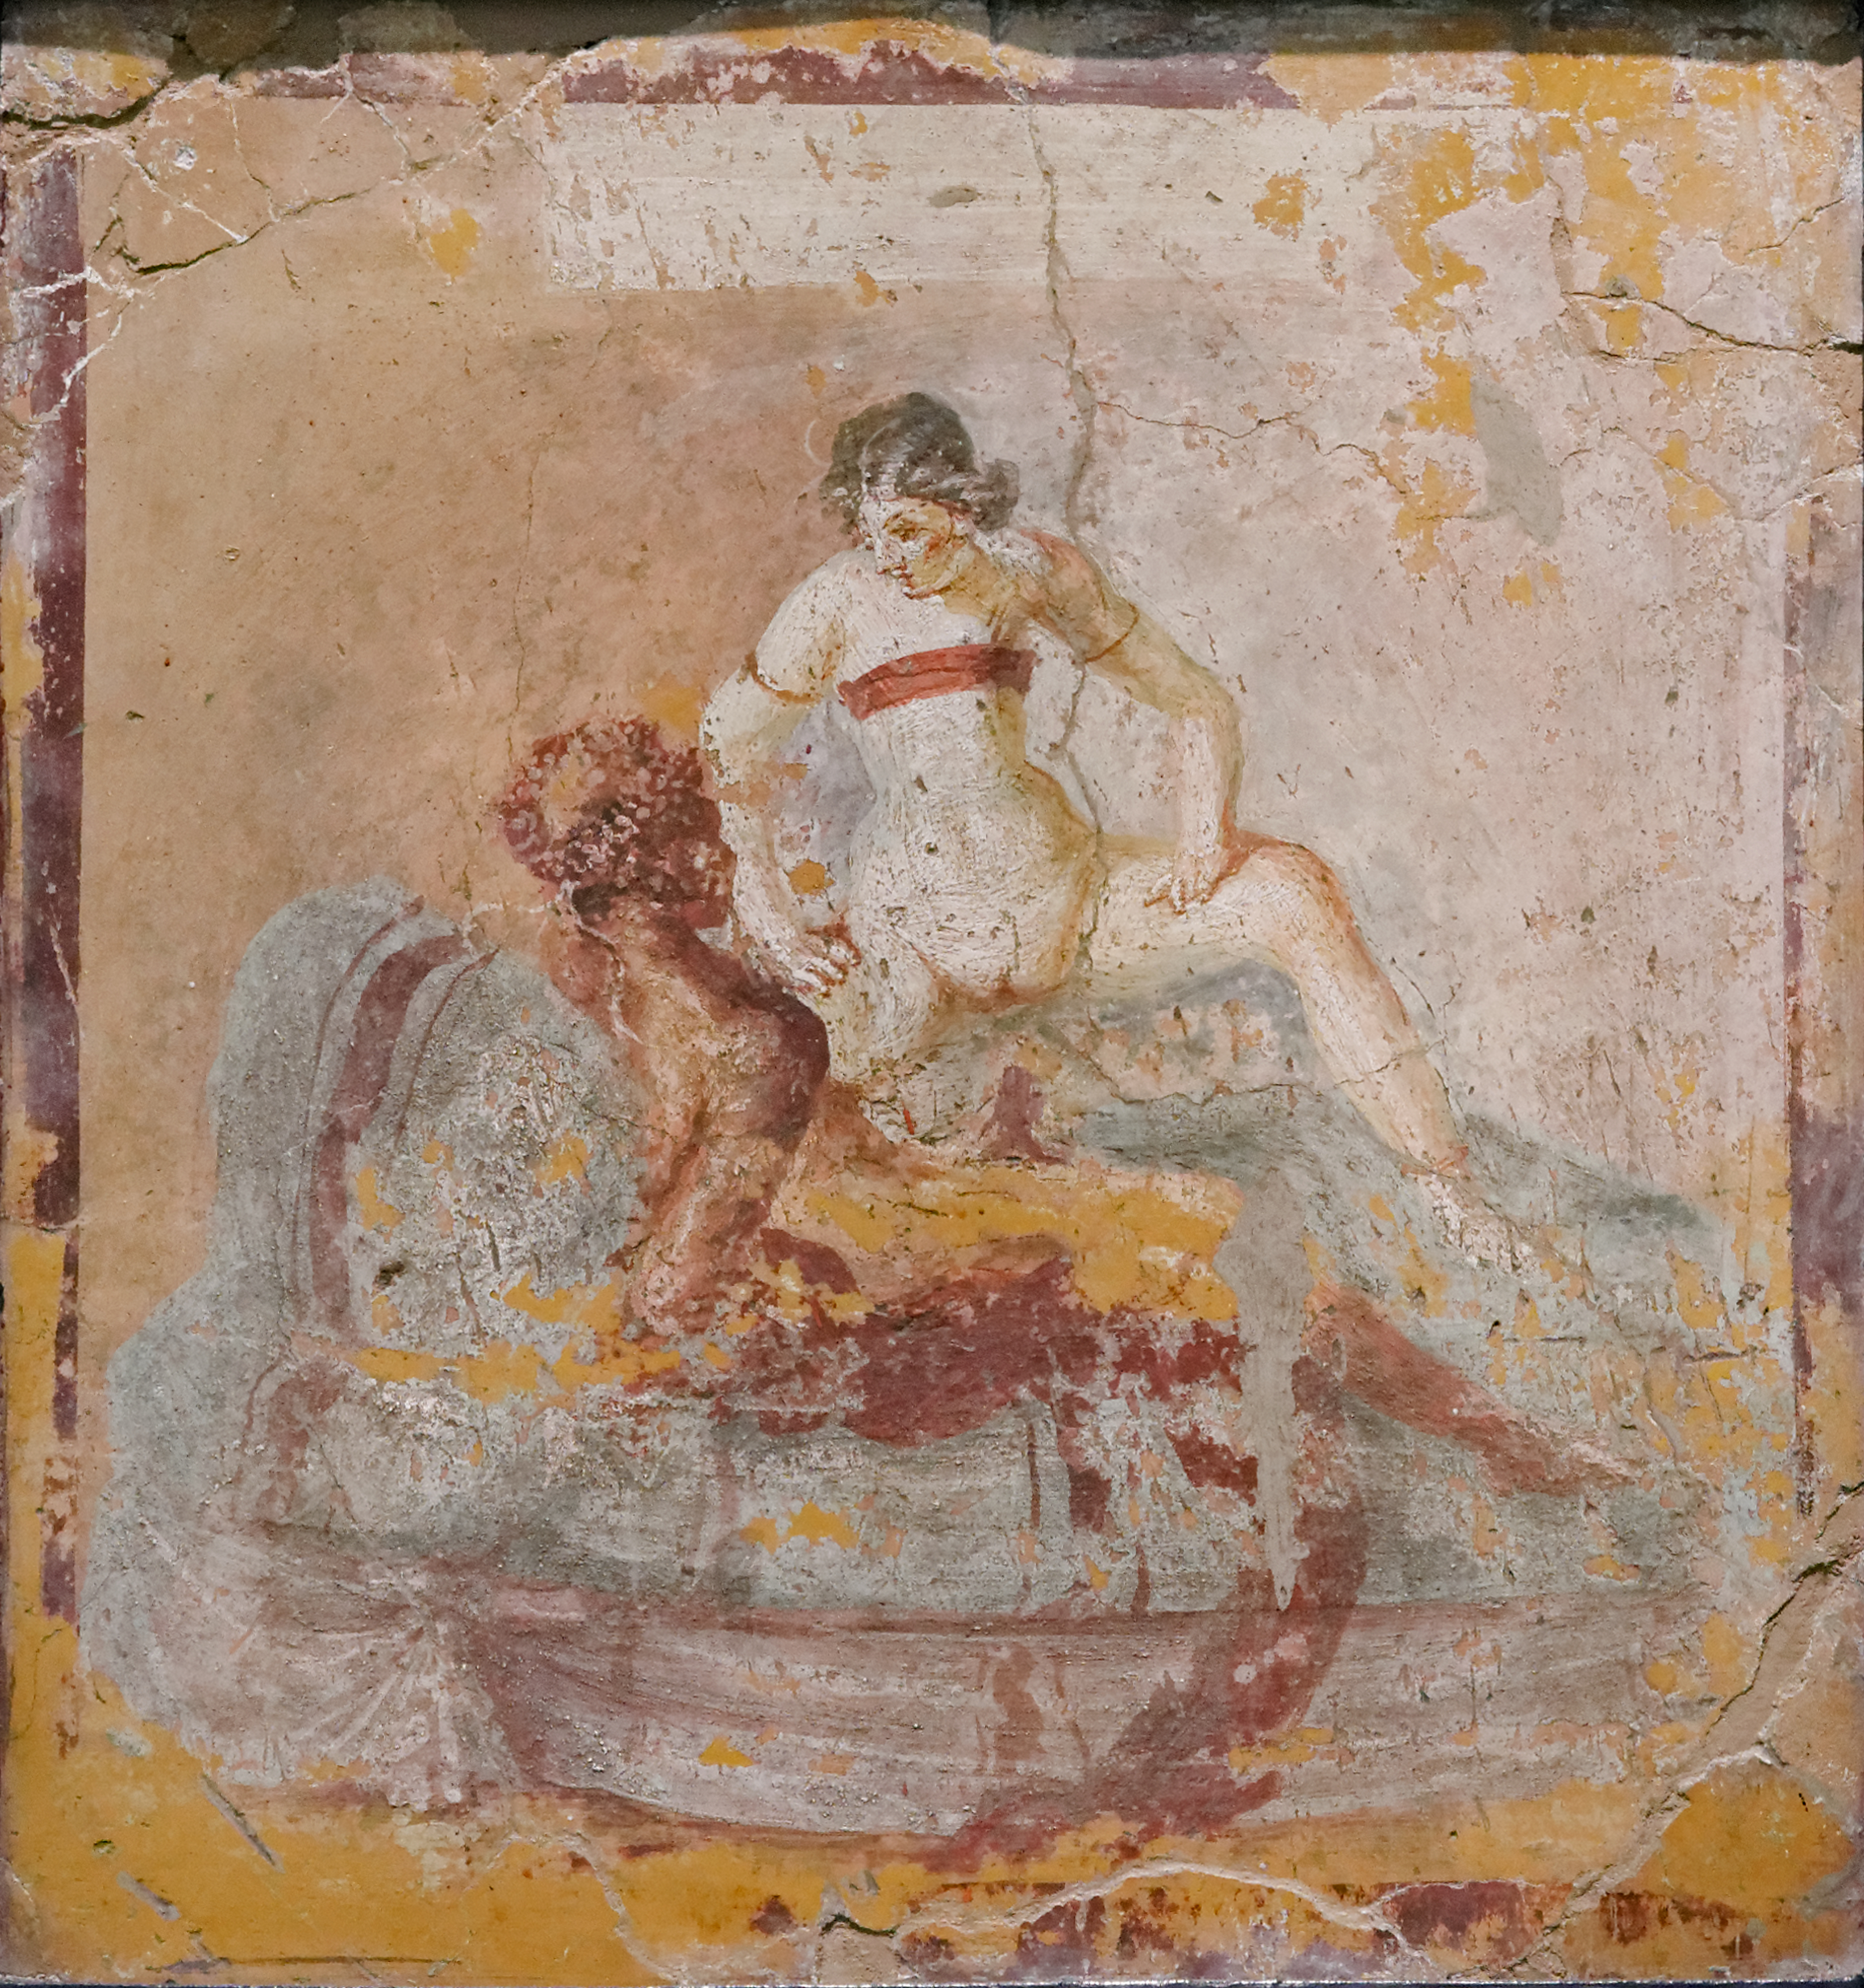 sex worker sex workers prostitution ancient rome